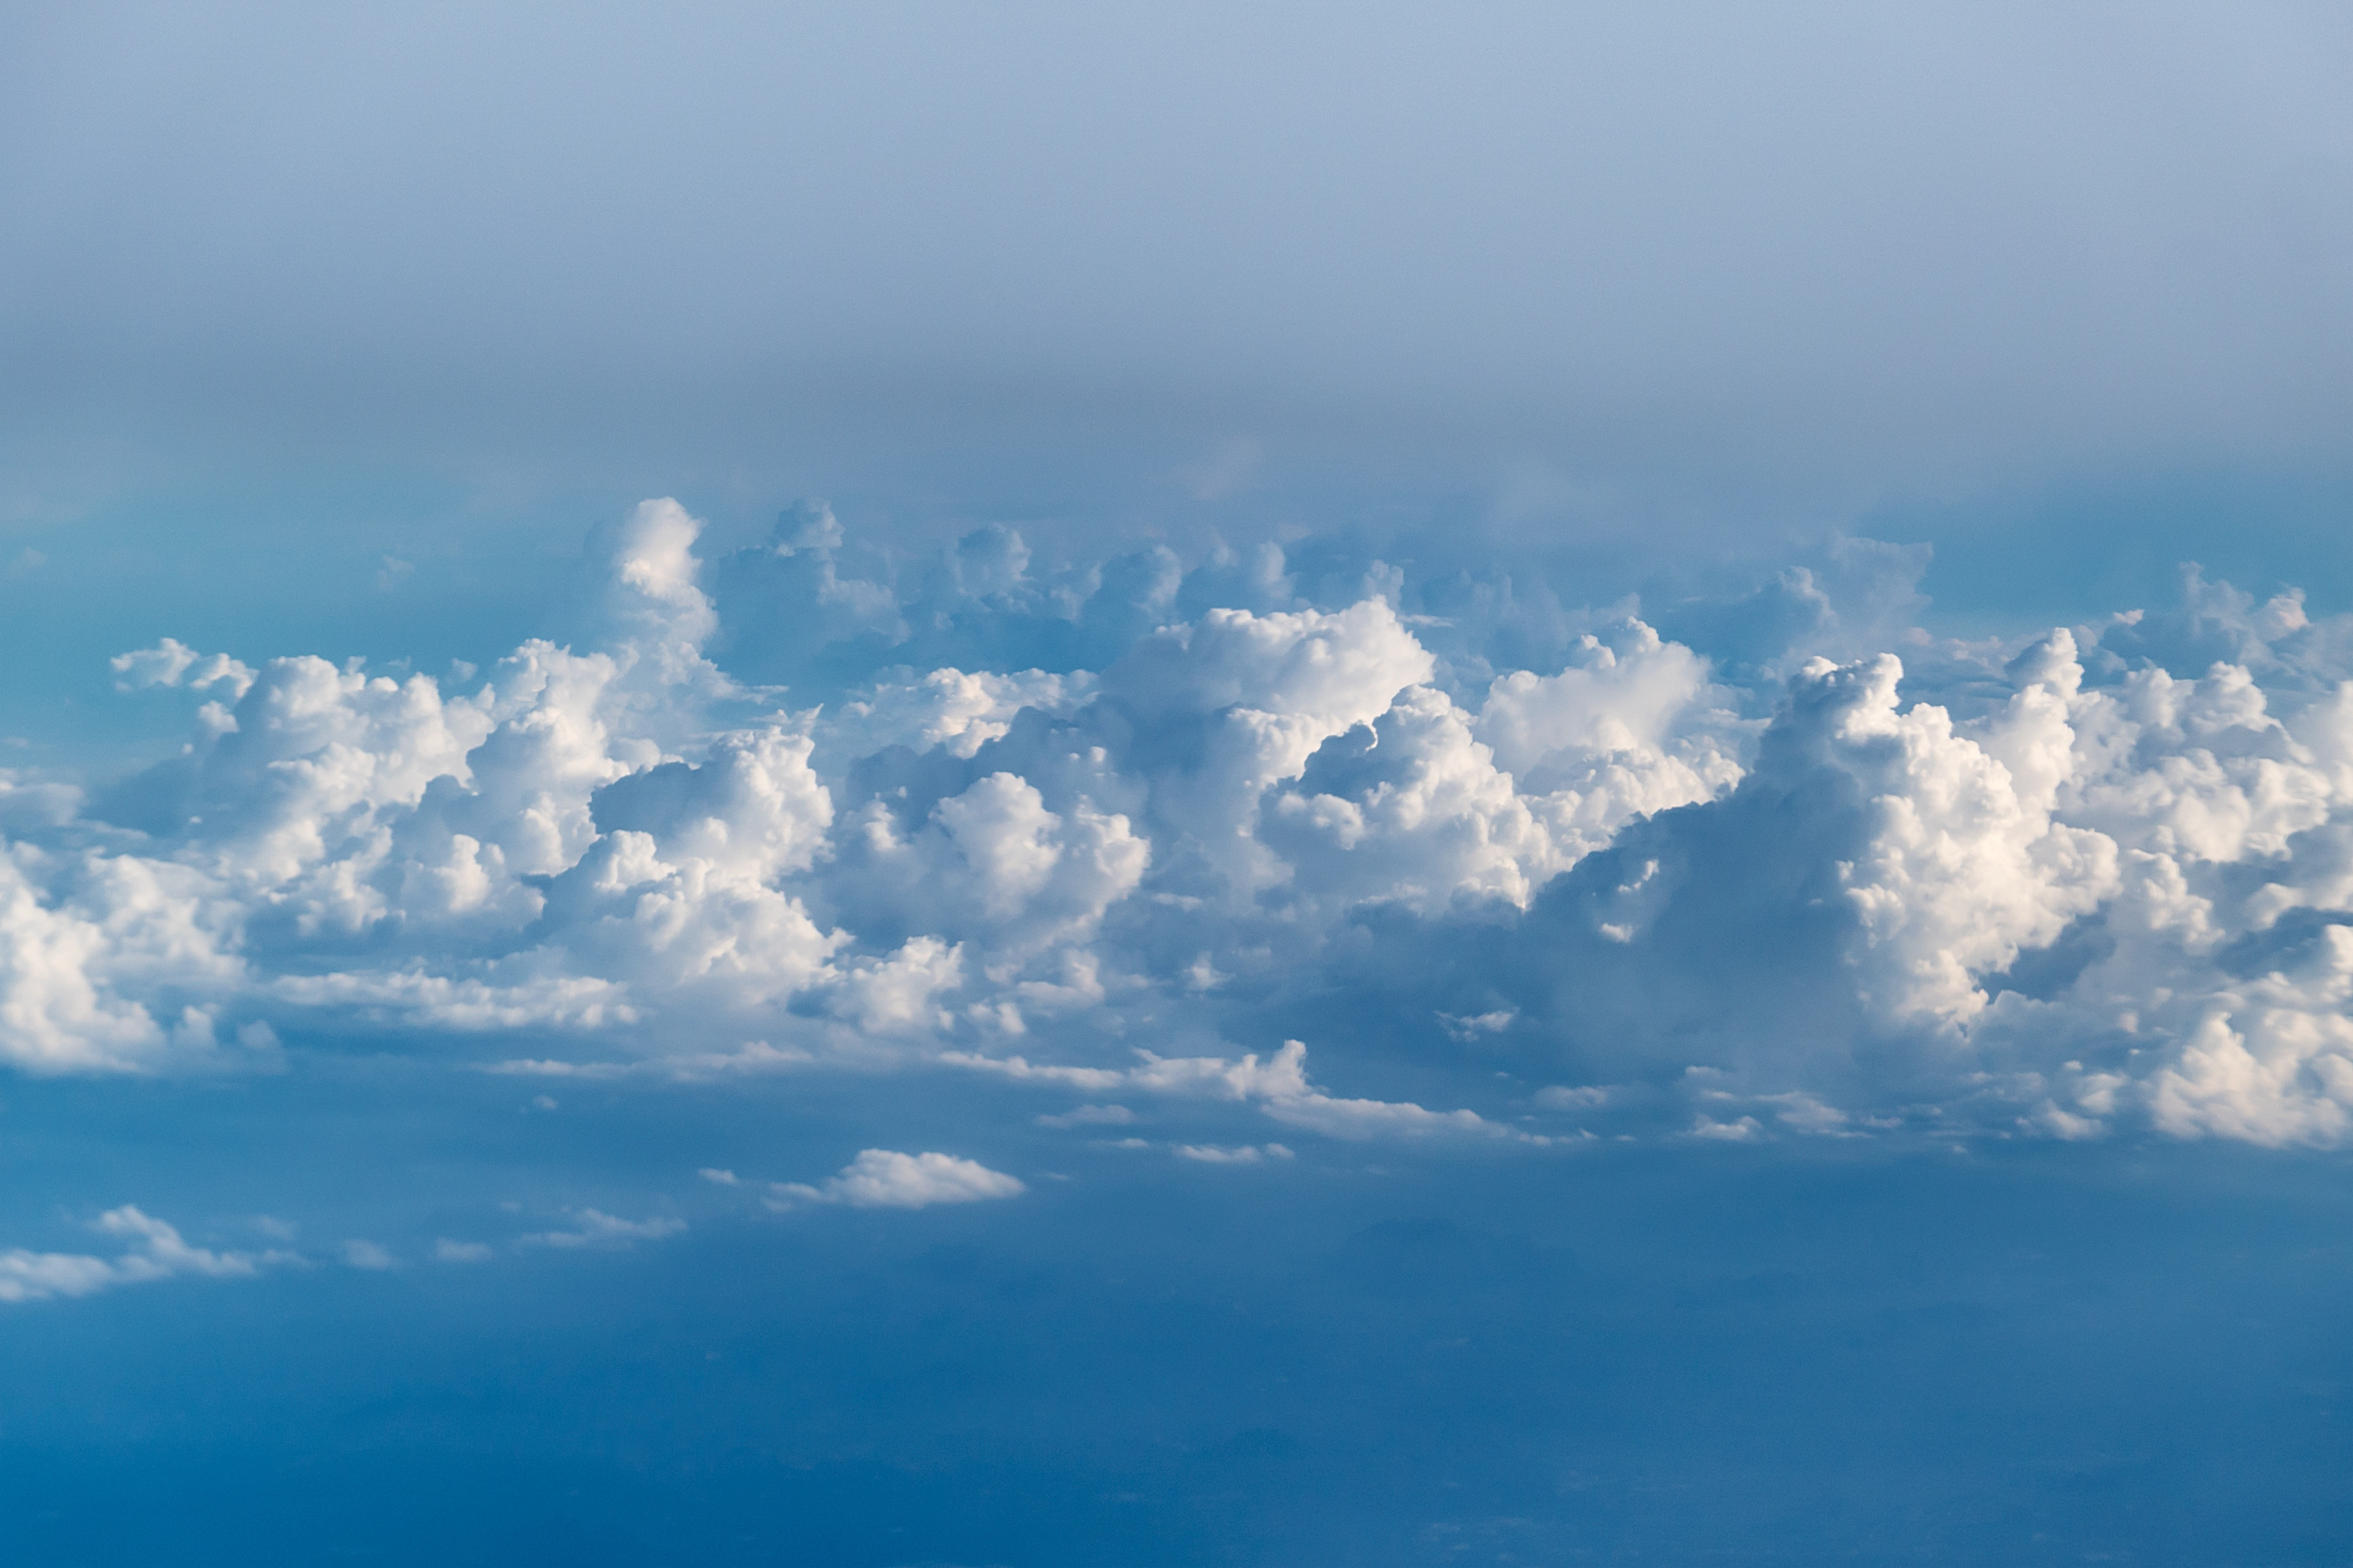 New Hd Wallpapers For Iphone 4 Free Stock Photo Of Beautiful Clouds Cloudy